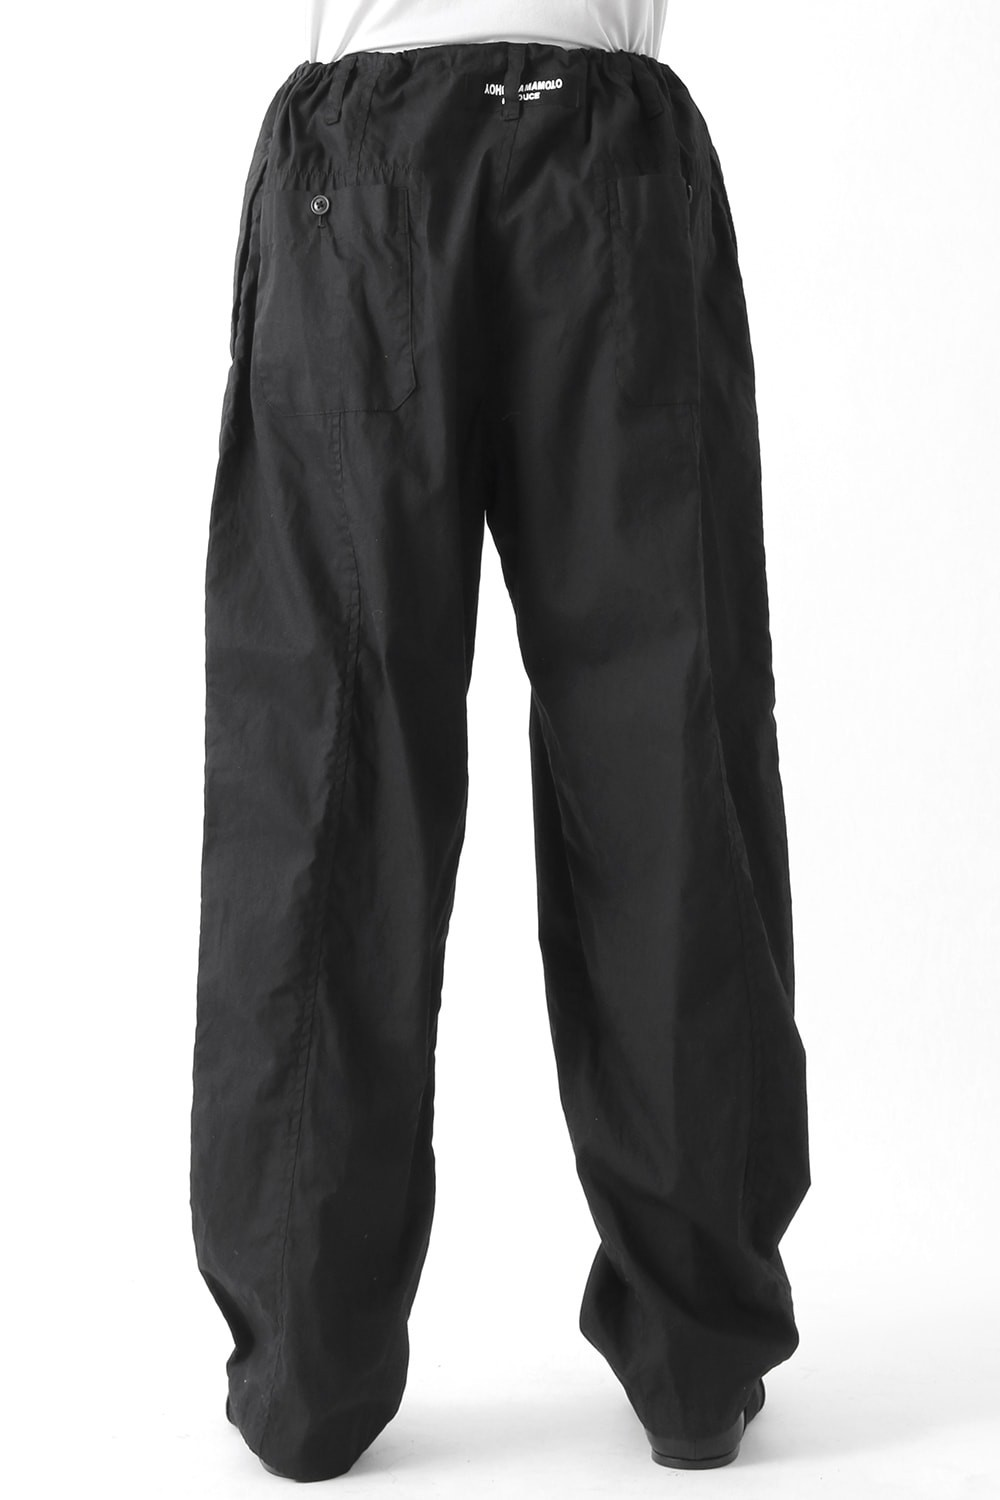 Classical Switched Parts Draw Cord Dyed Pants